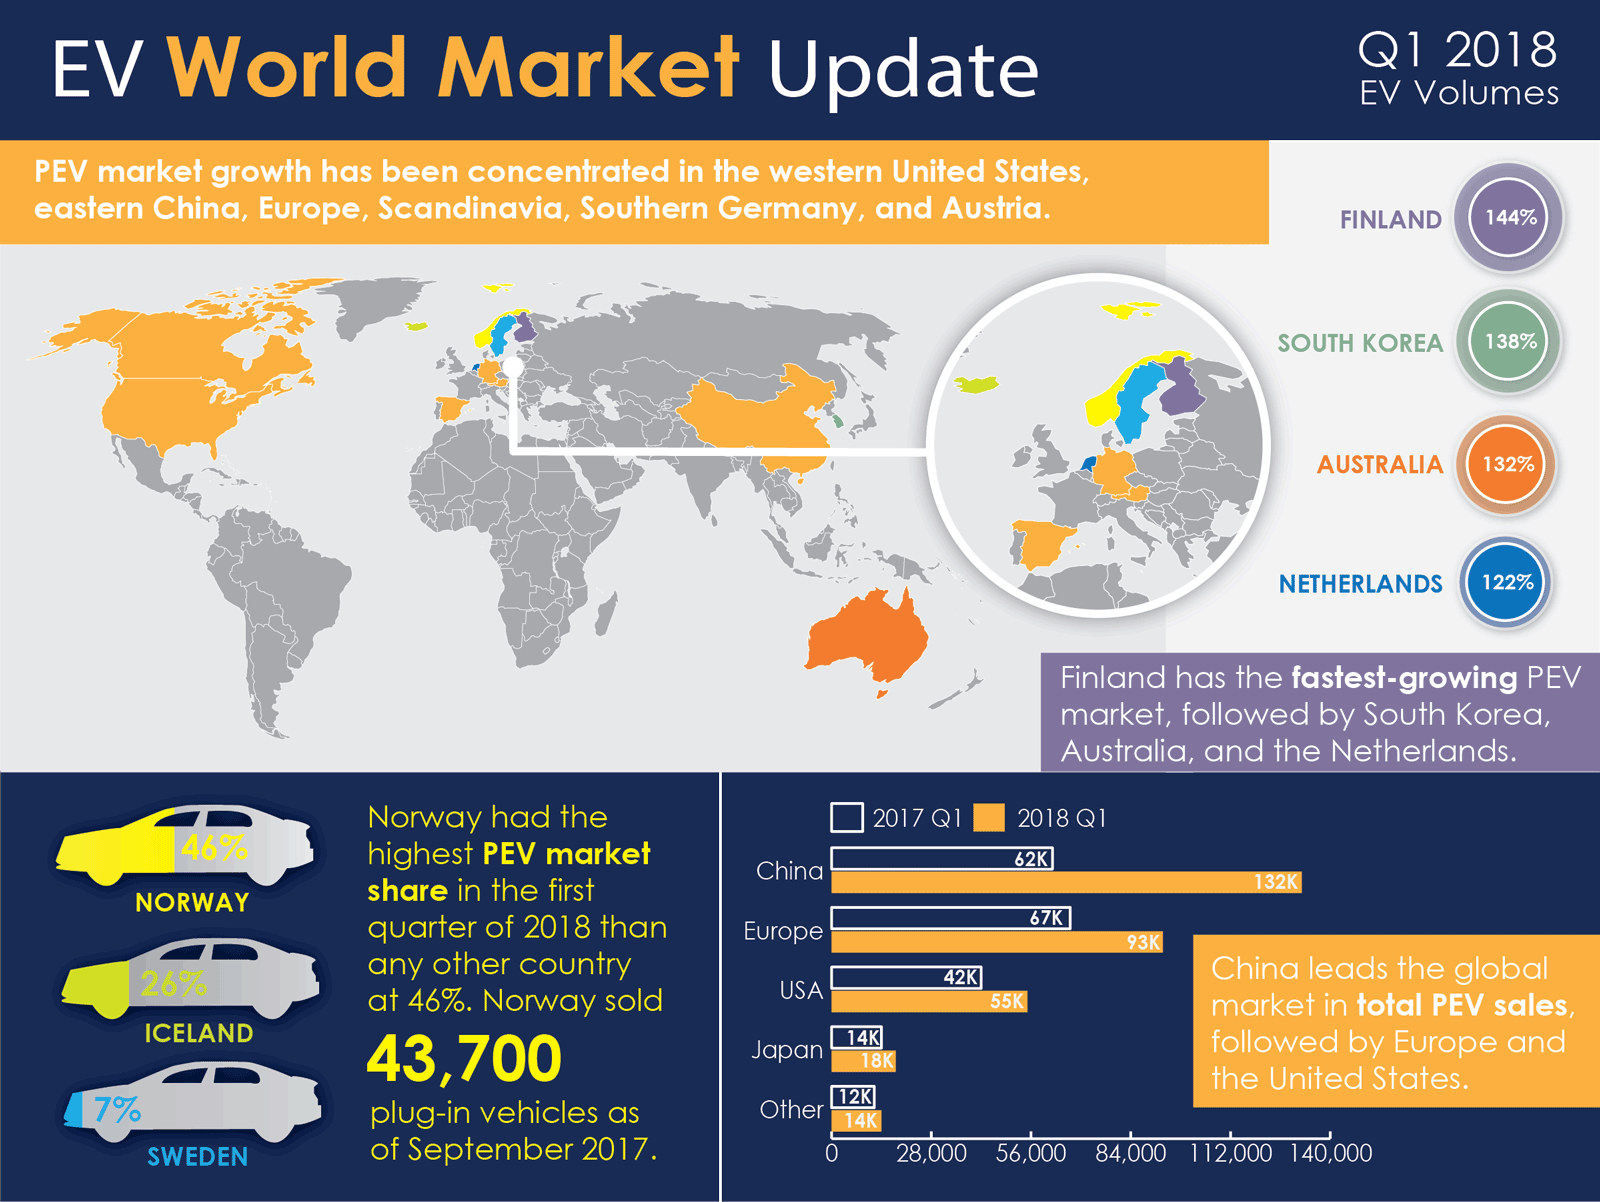 EV World Market Update - 2018 Q1